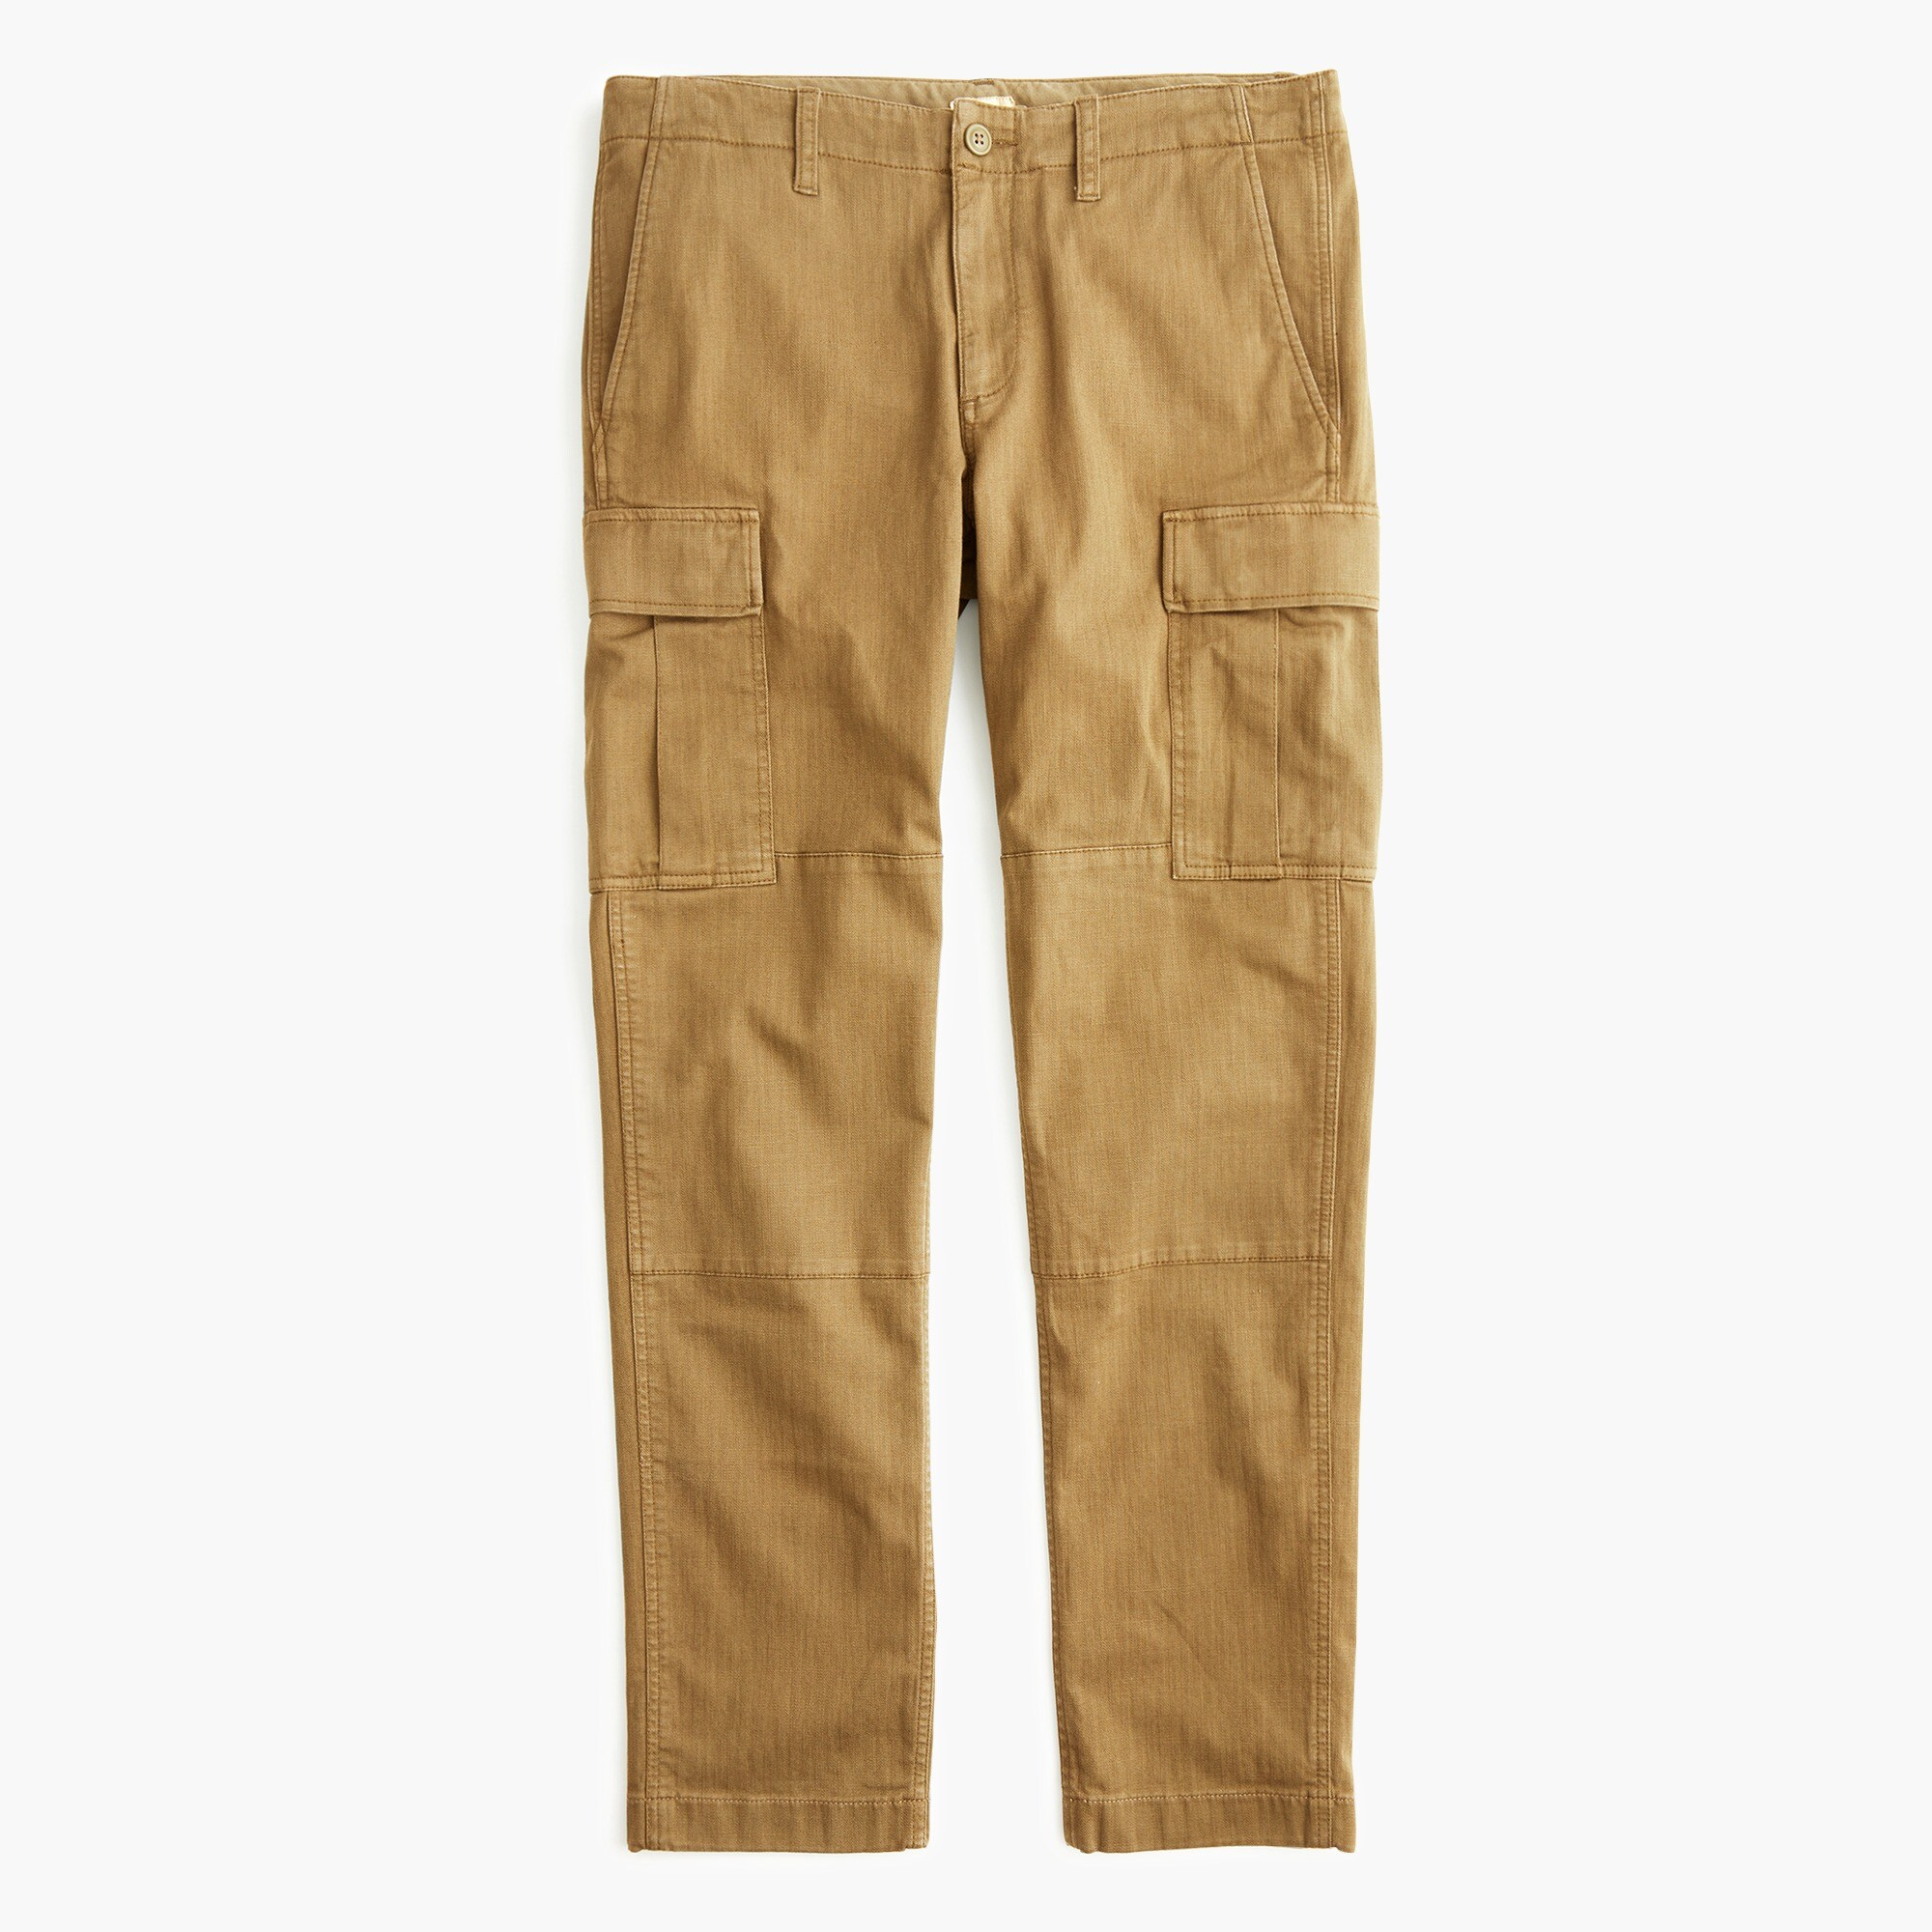 mens 770 Straight-fit stretch cargo pant in garment-dyed herringbone